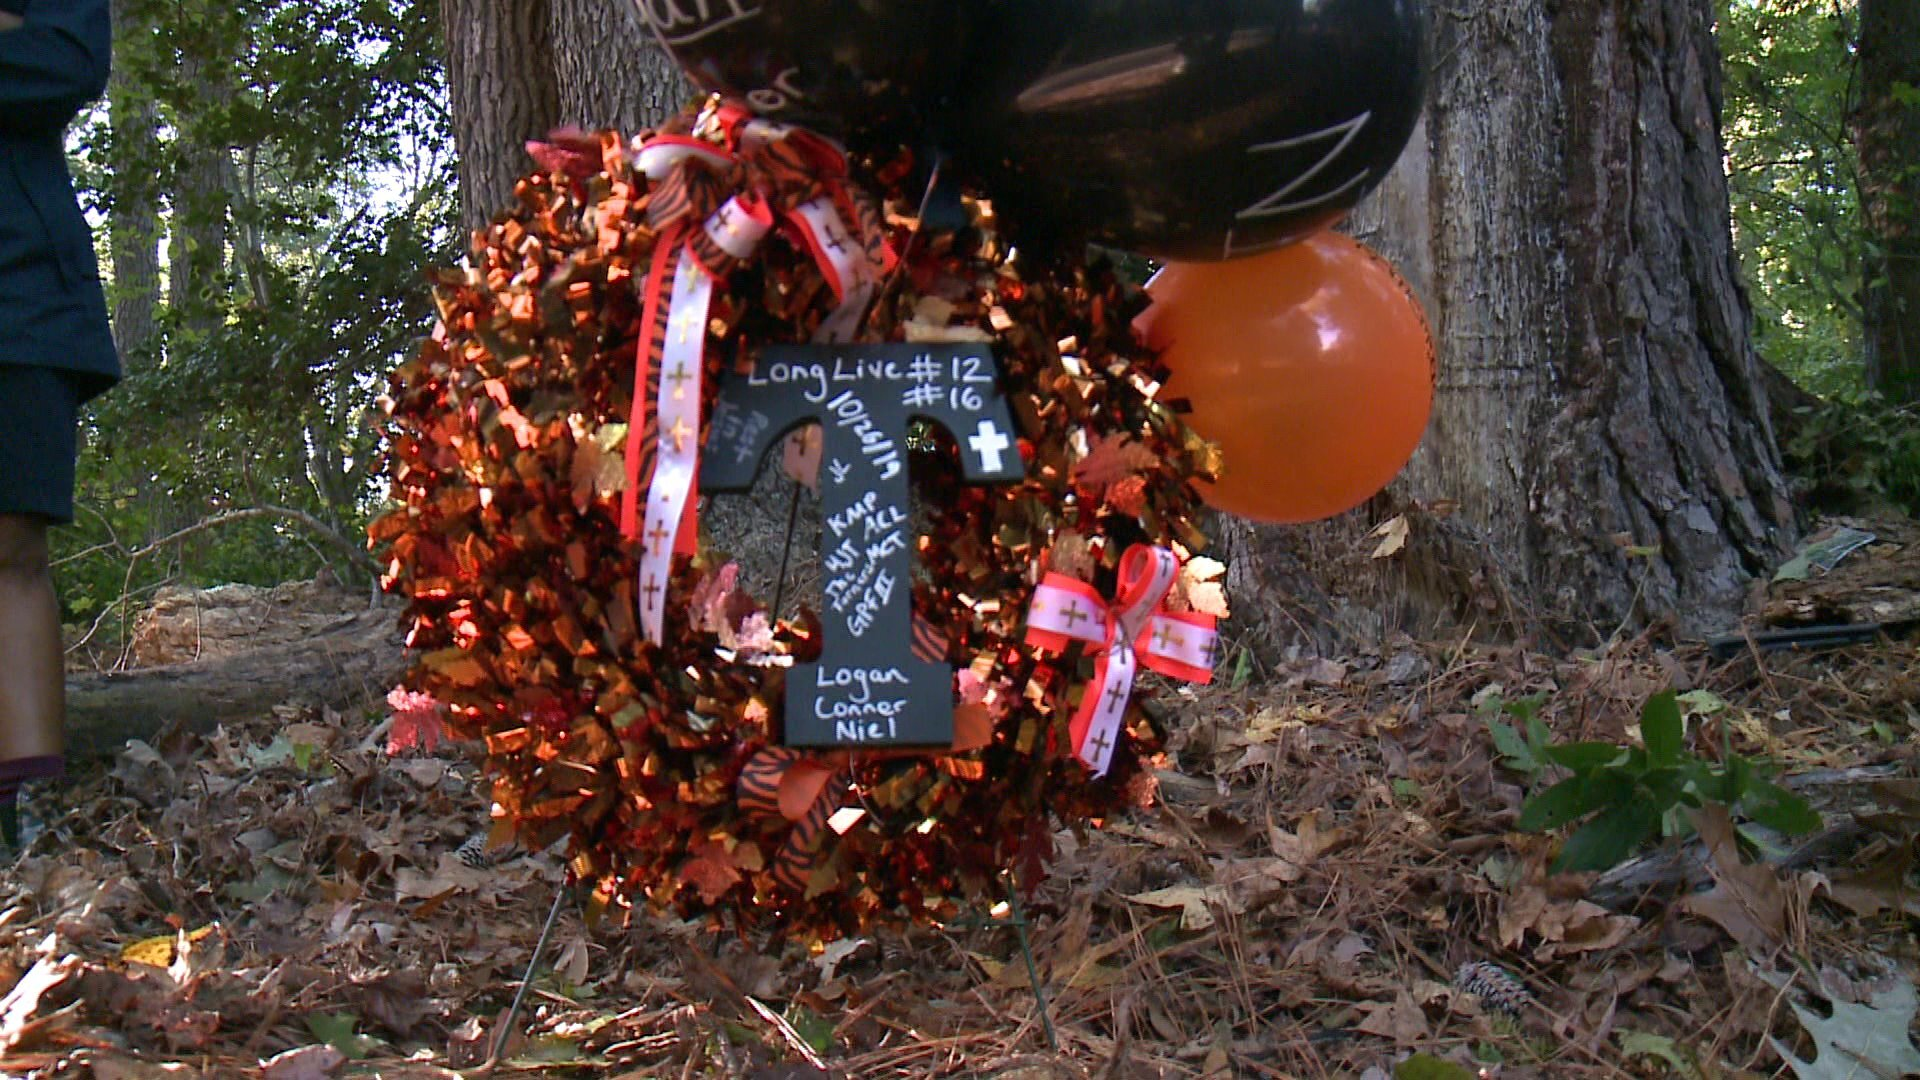 Photos: 3 Virginia high school students killed in crash after homecoming dance